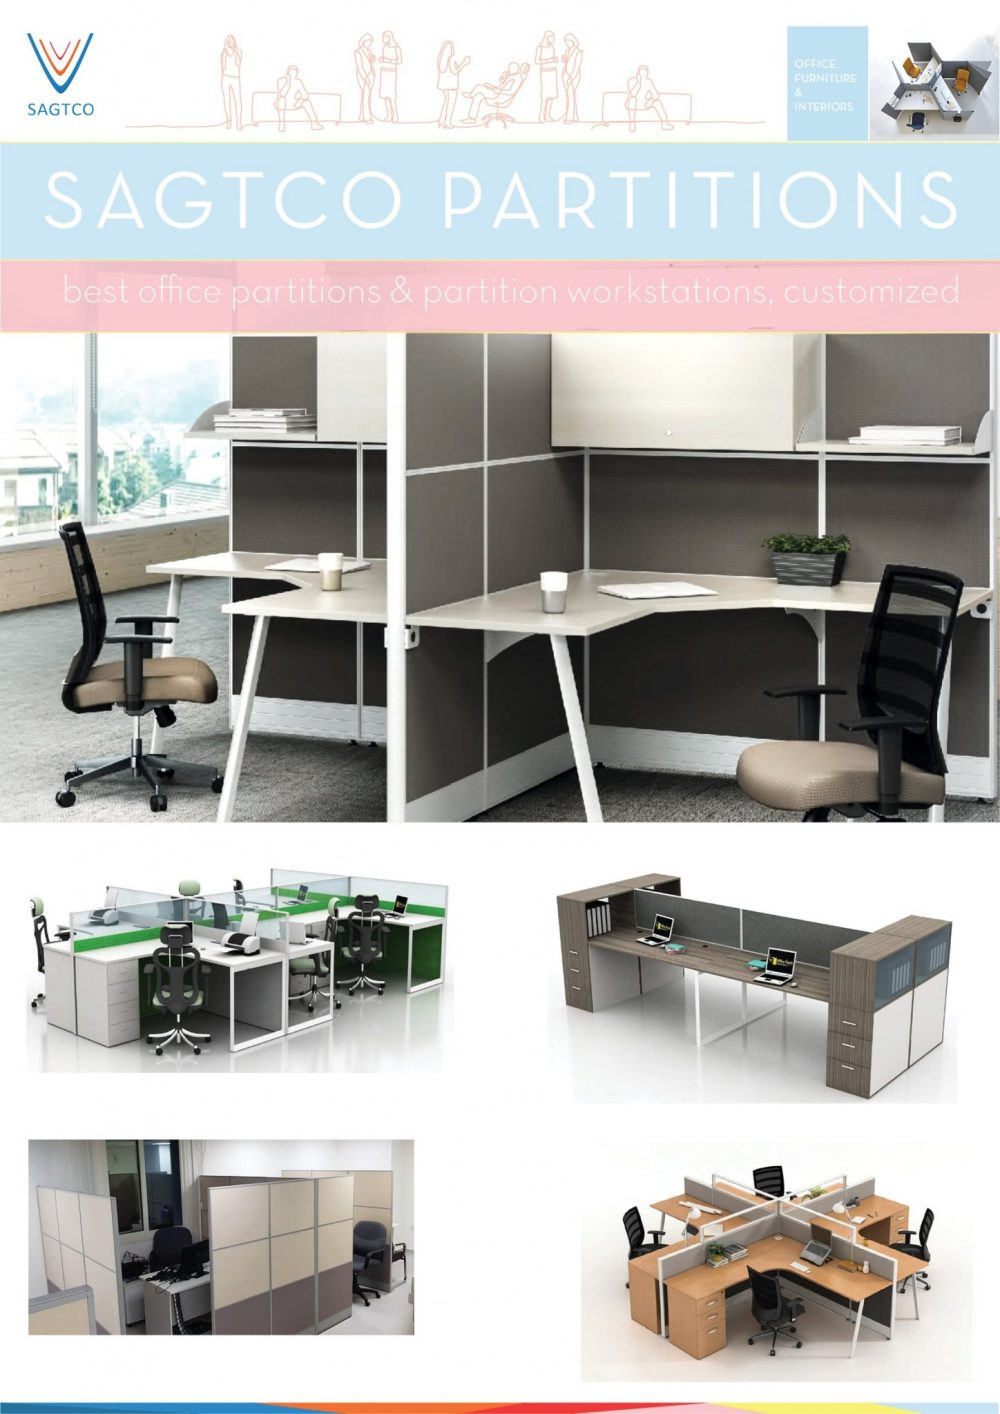 Office Furniture al ain, 🥇 Office Furniture Sharjah – Office Workstations & Furniture in Sharjah, Office Furniture Dubai | Office Furniture Company | Office Furniture Abu Dhabi | Office Workstations | Office Partitions | SAGTCO